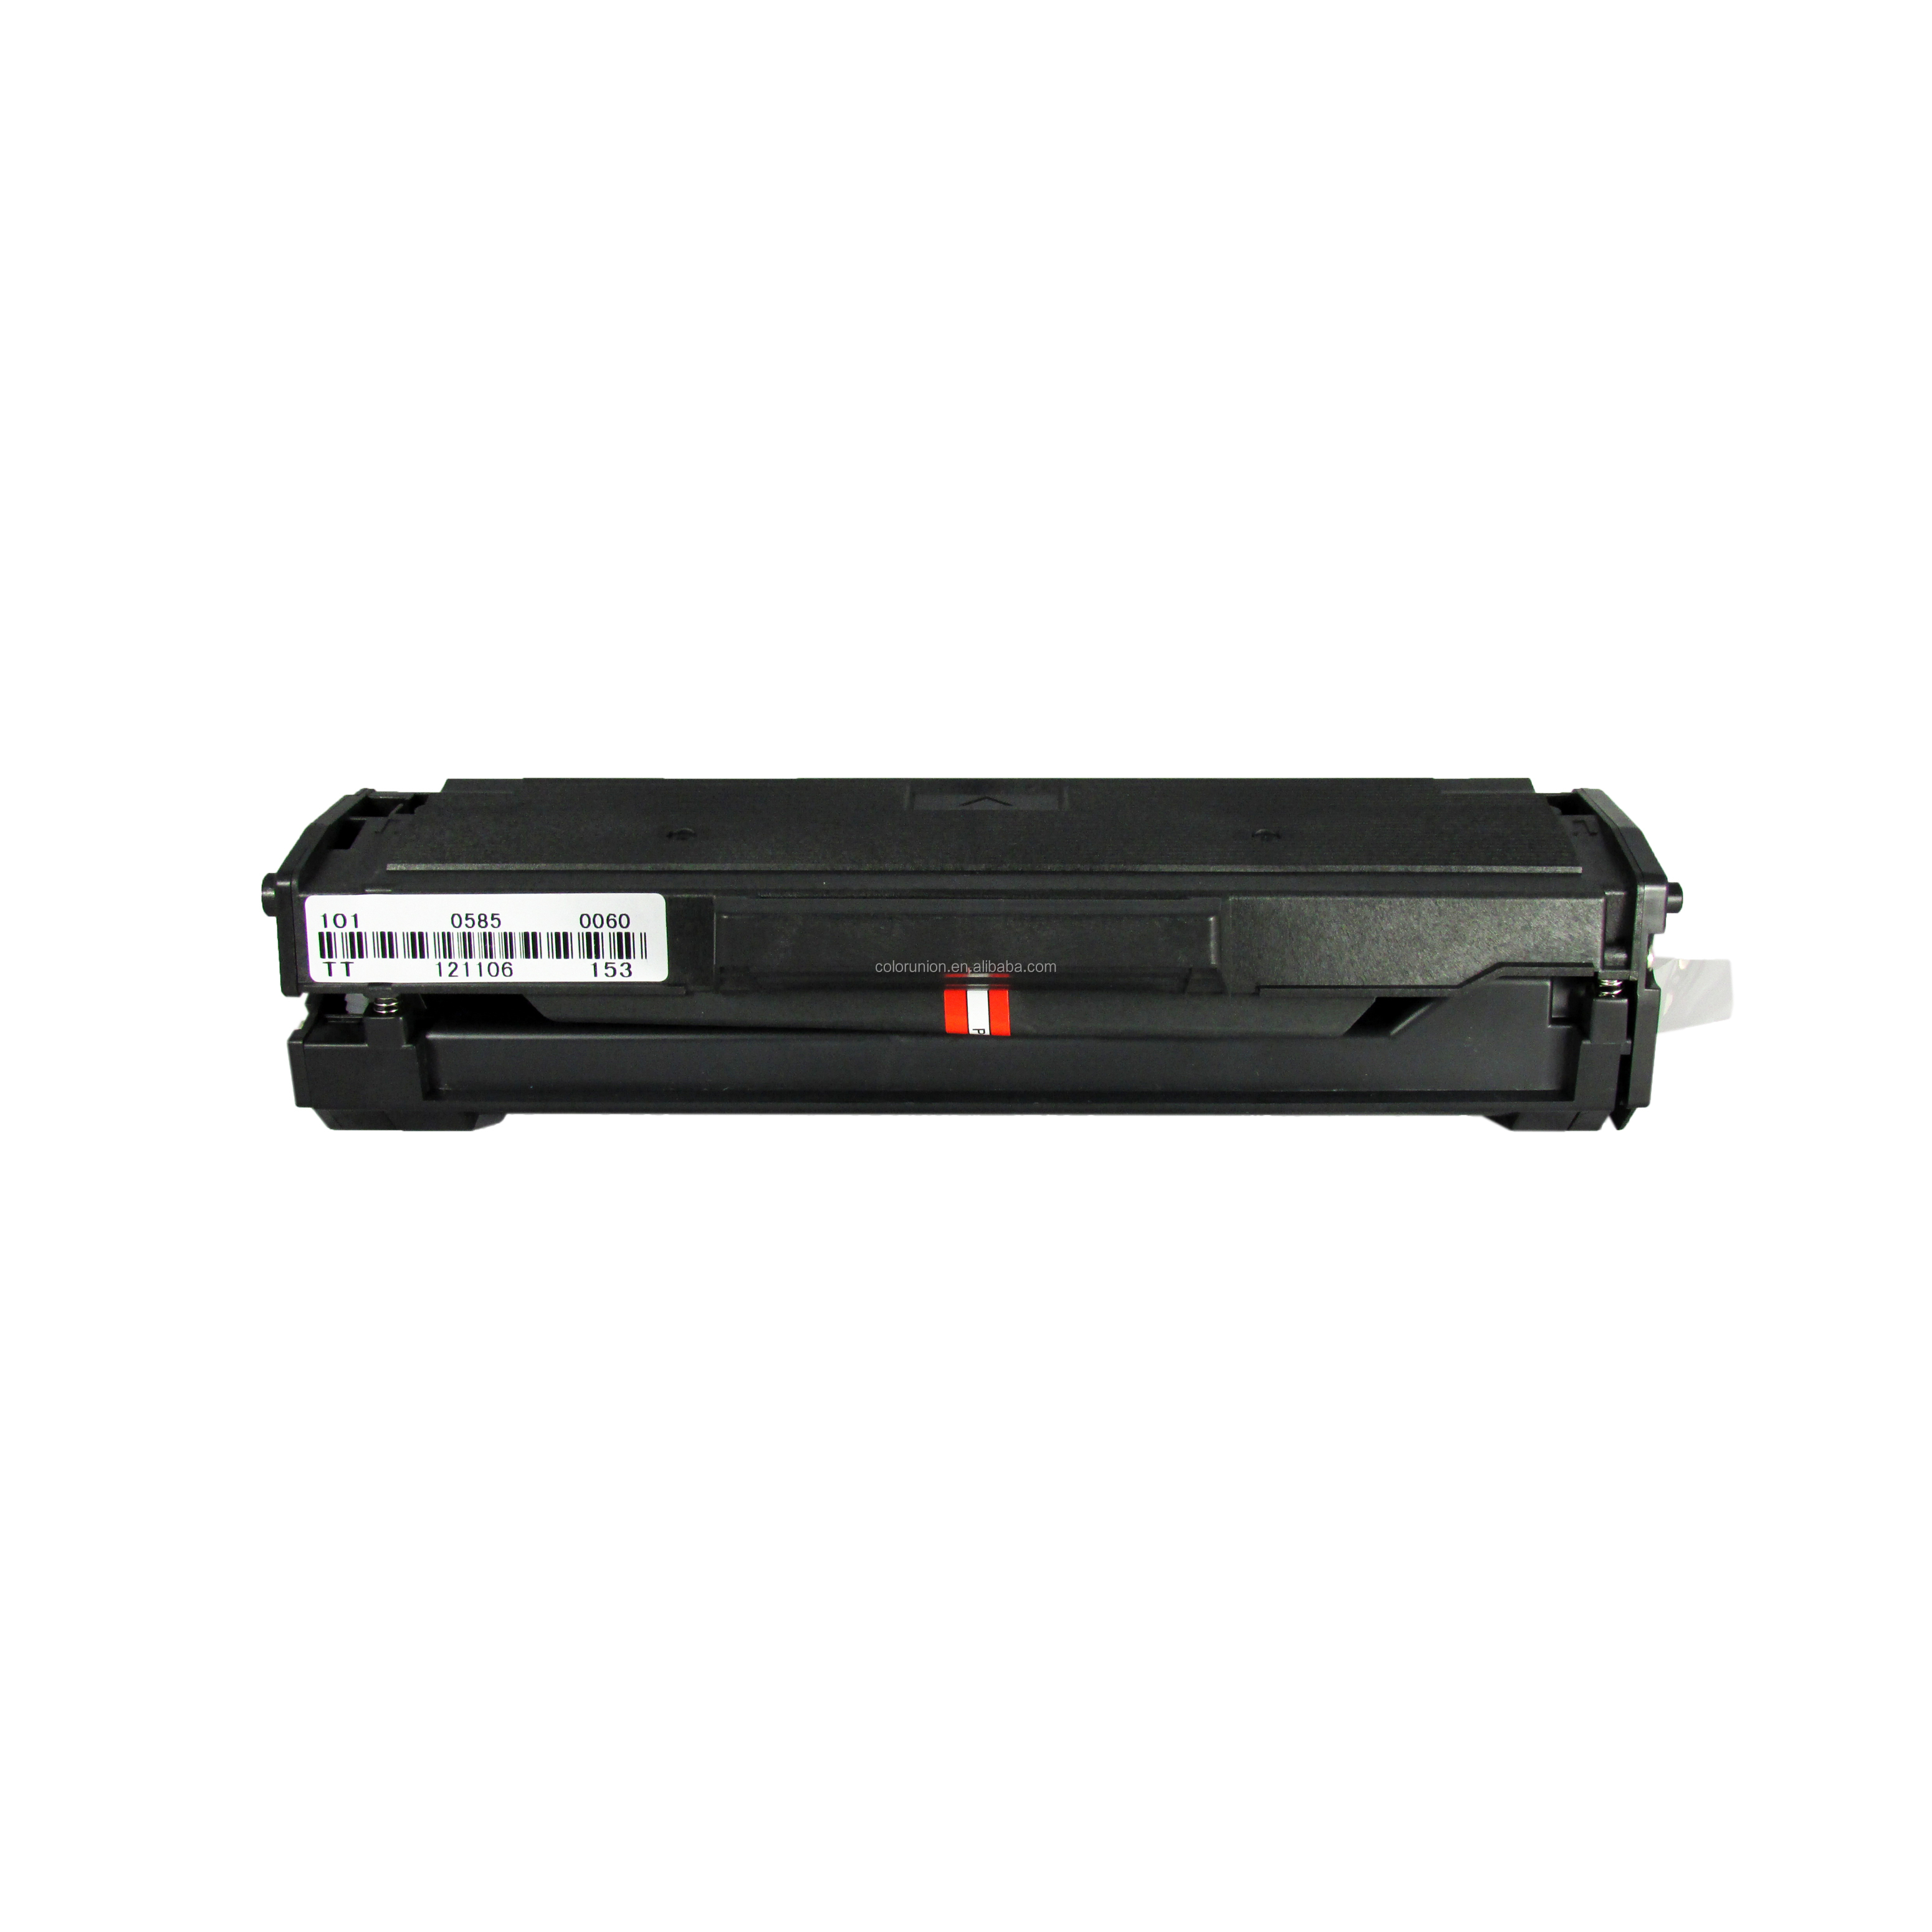 cheapest products online shenzhen toner cartridge black